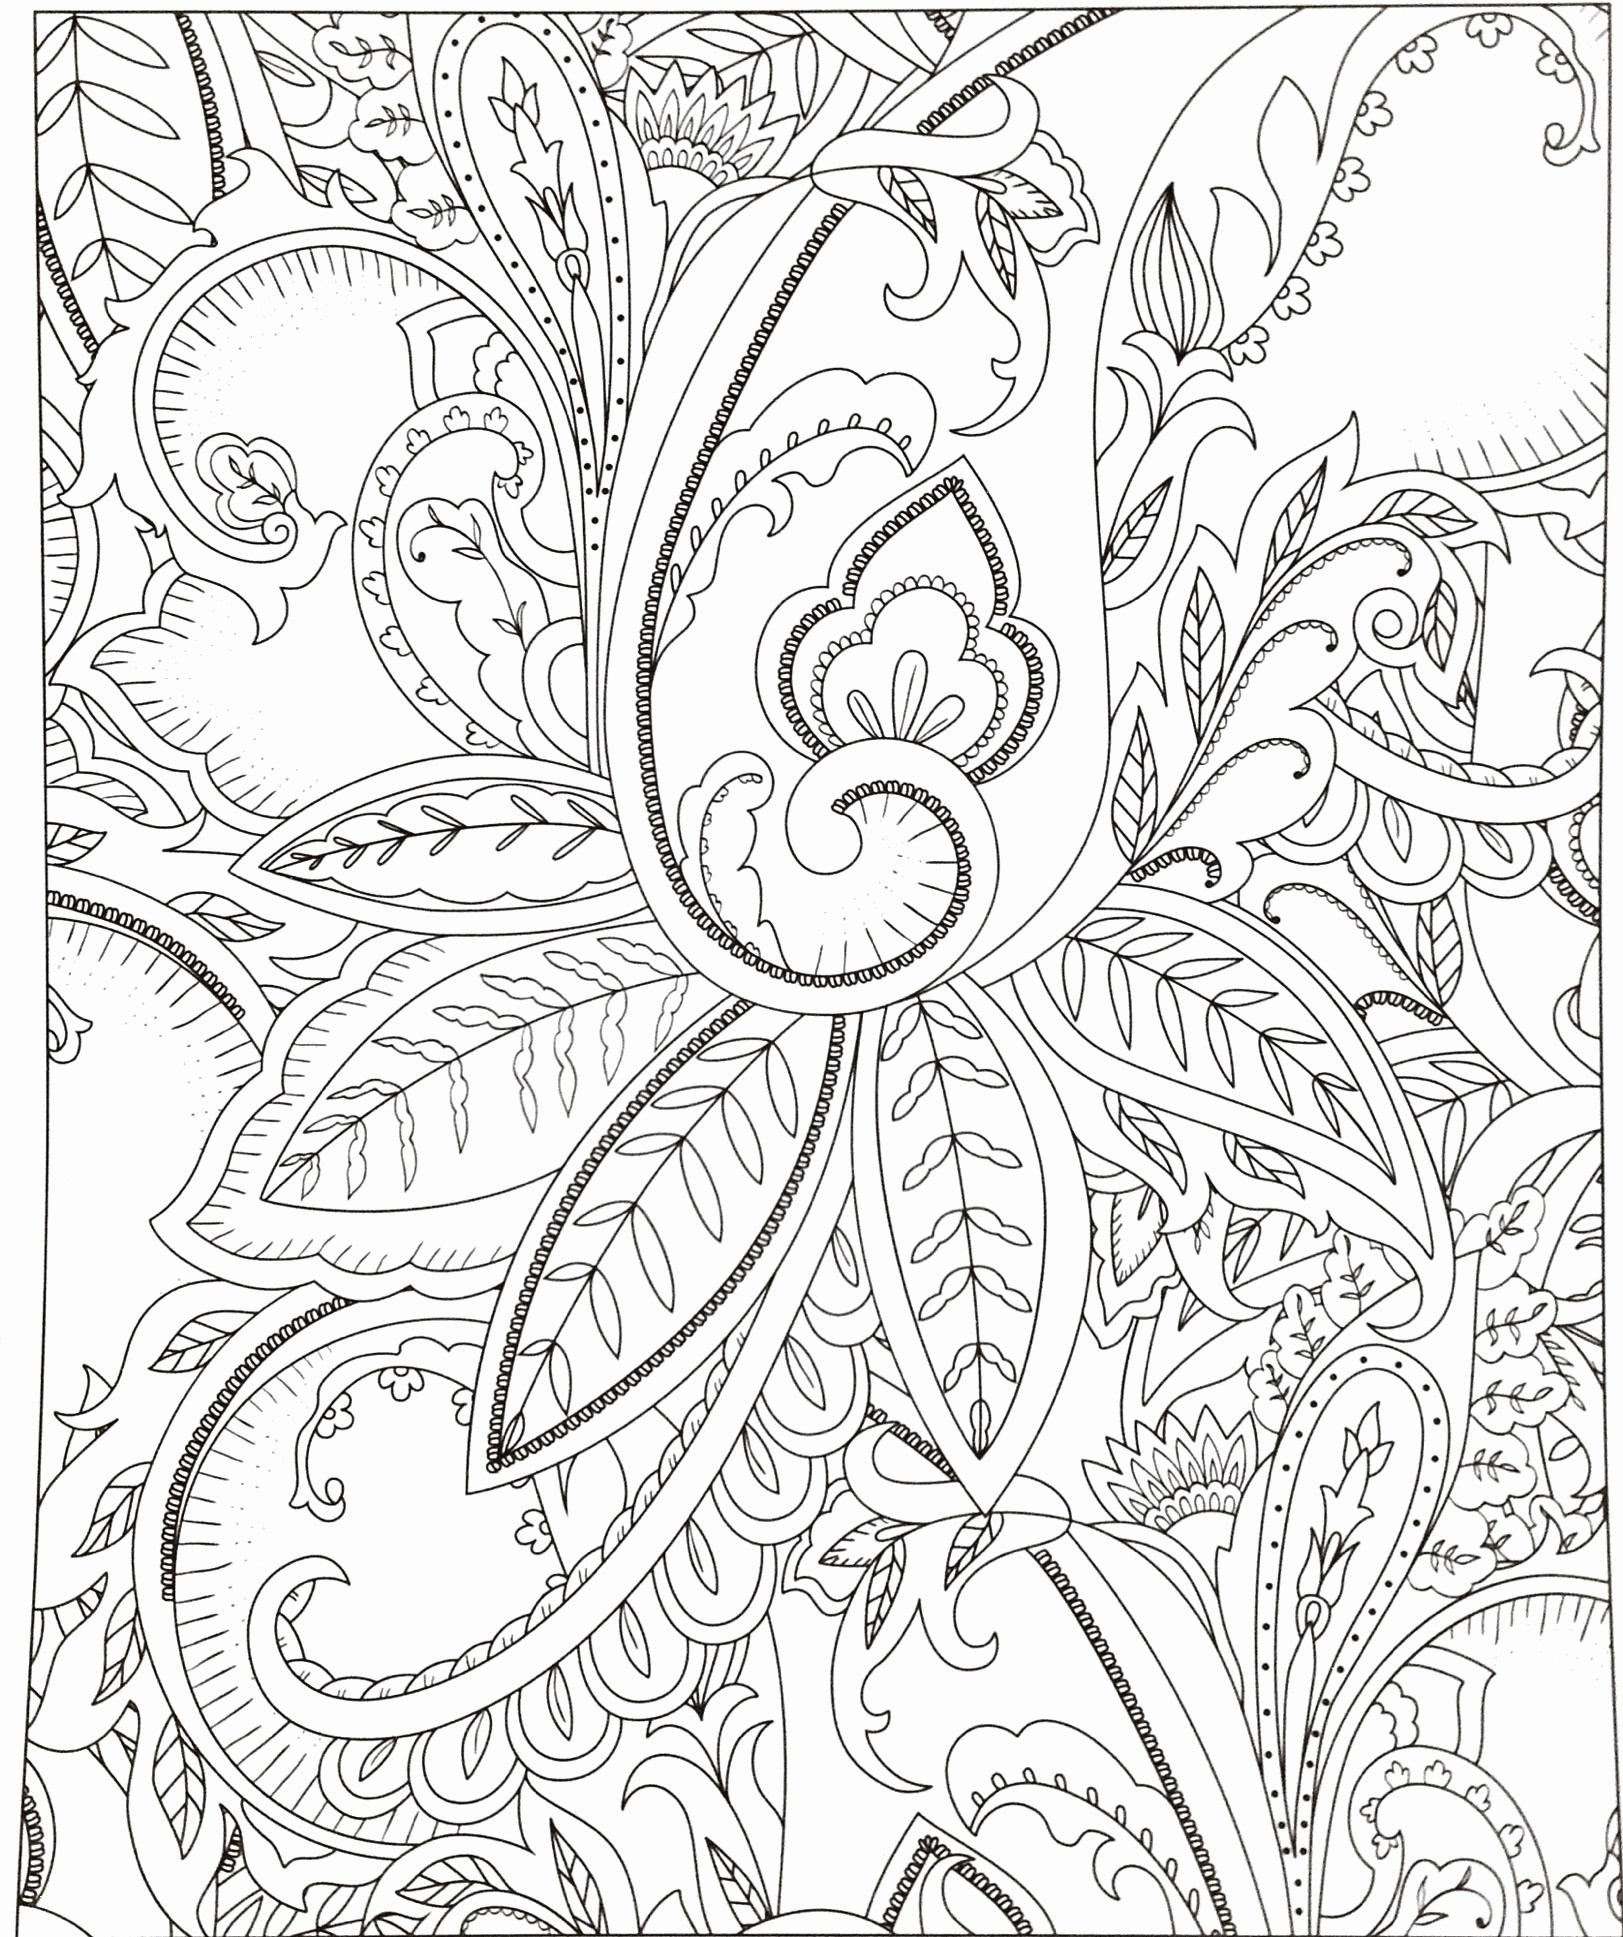 Africa Coloring Pages  Printable 3j - Save it to your computer